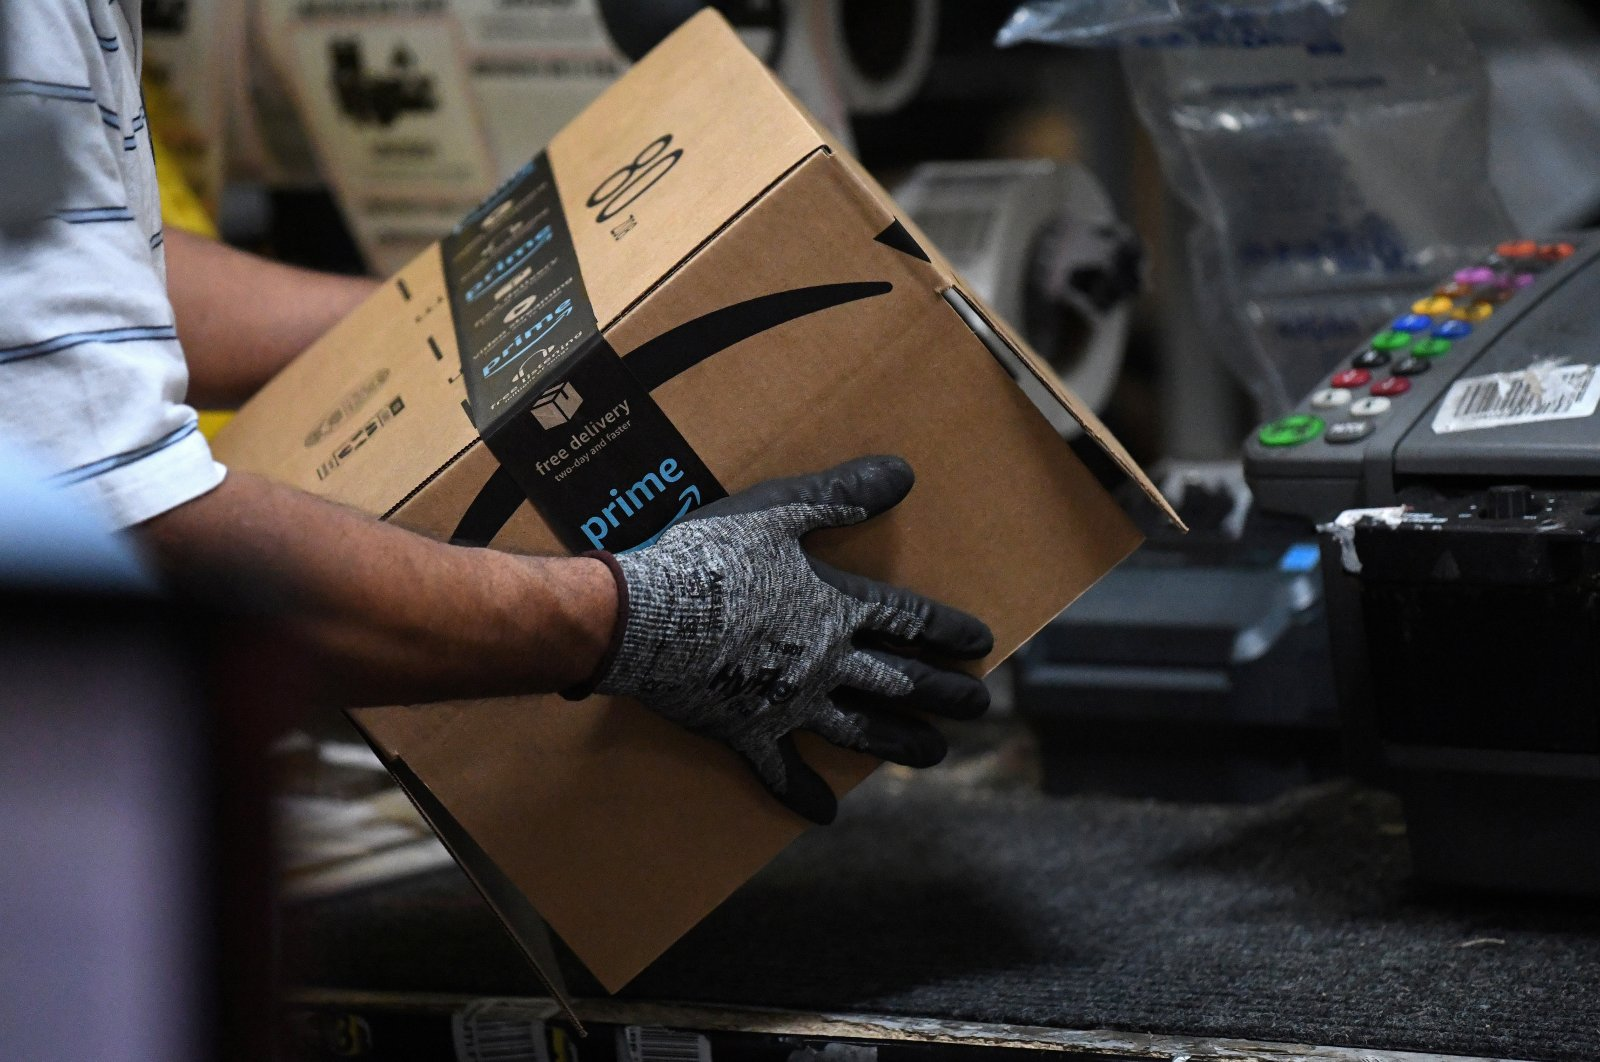 A worker assembles a box for delivery at the Amazon fulfillment center in Baltimore, Maryland, U.S., April 30, 2019. (Reuters Photo)